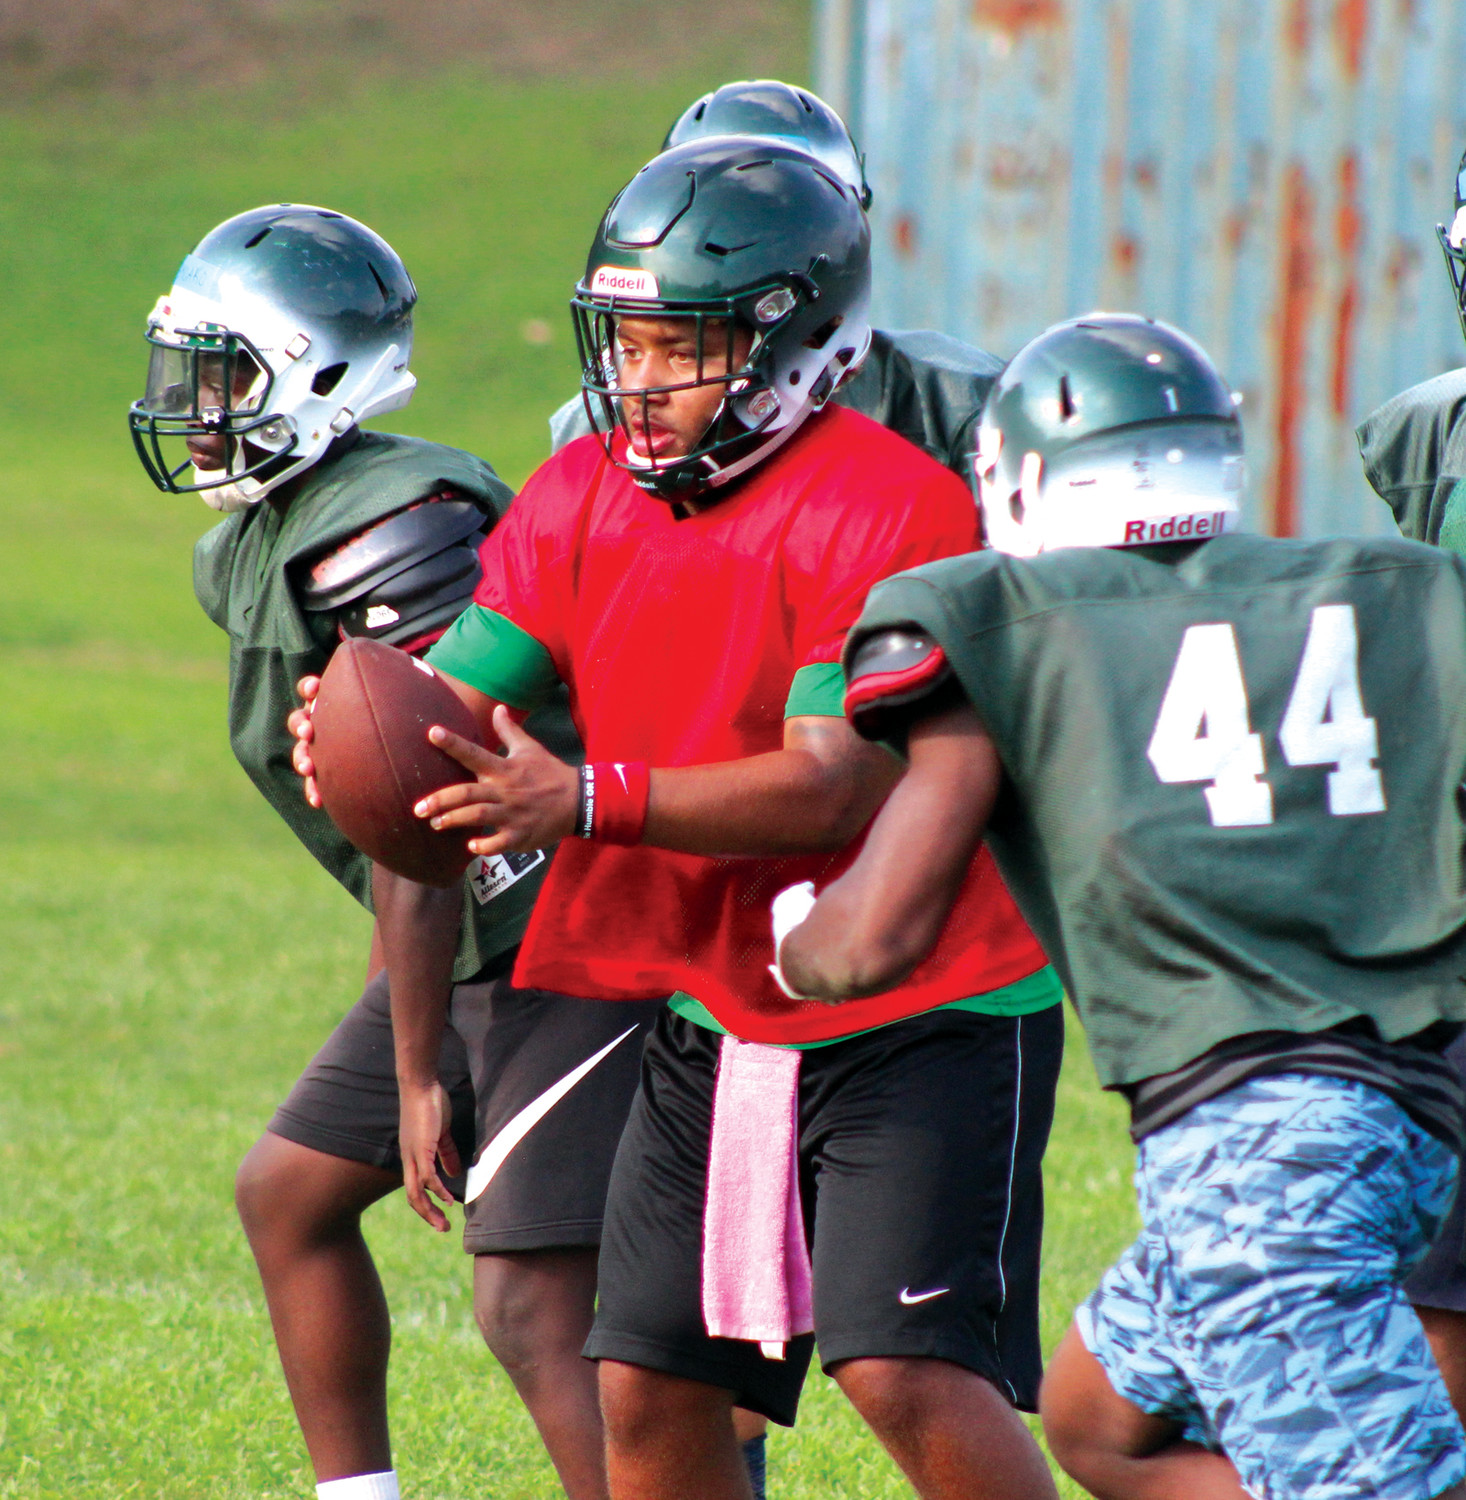 UNDER CENTER: Rayven deOliveira (red) hands off to a running back during a drill at practice. deOliveira is set to replace Justin Neary at quarterback for East.